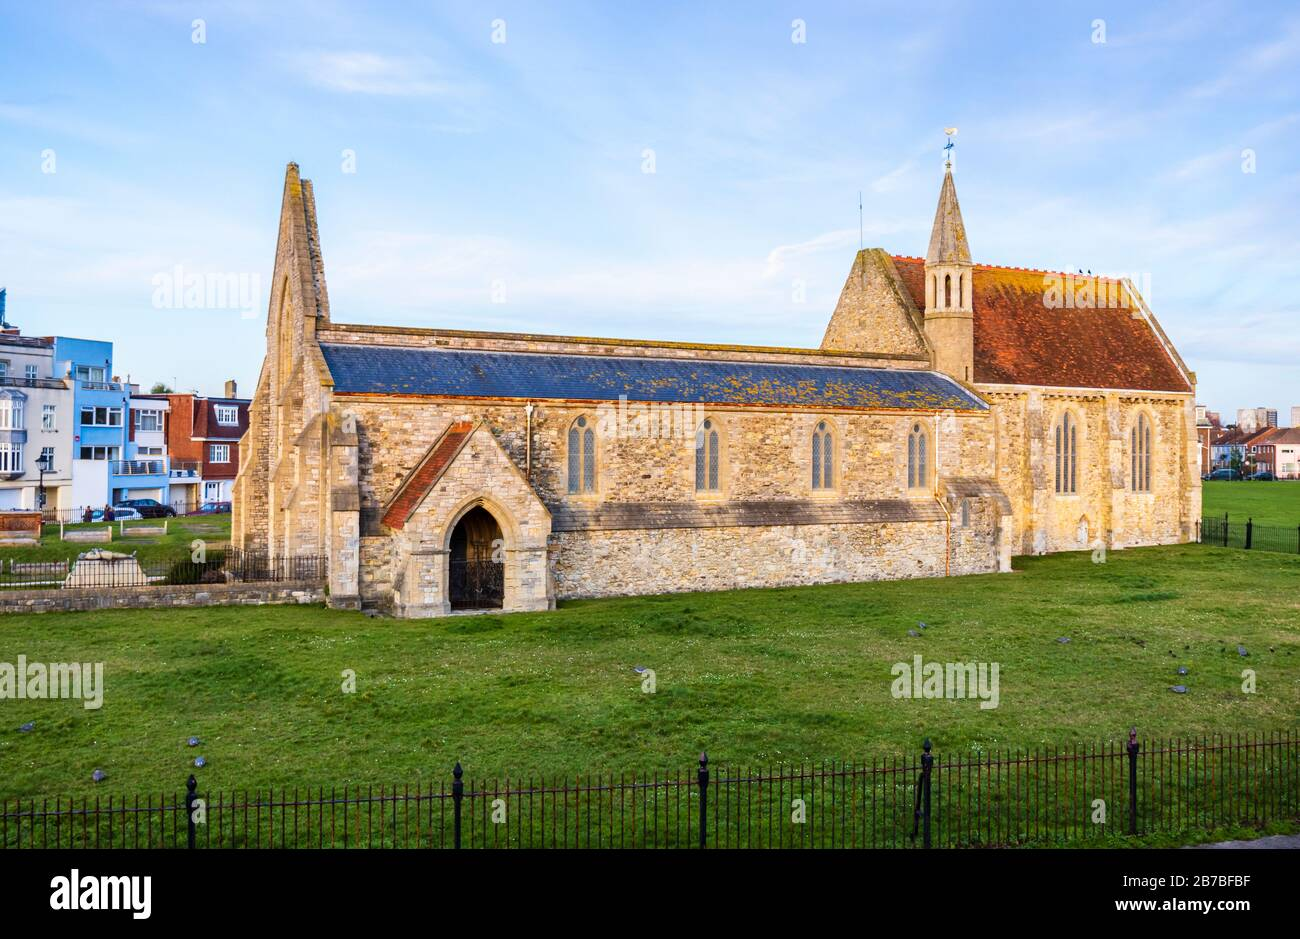 Roofless ruin of Royal Garrison Church, damaged by German bombing in the Second World War Blitz, Old Portsmouth, Hampshire, south coast England Stock Photo